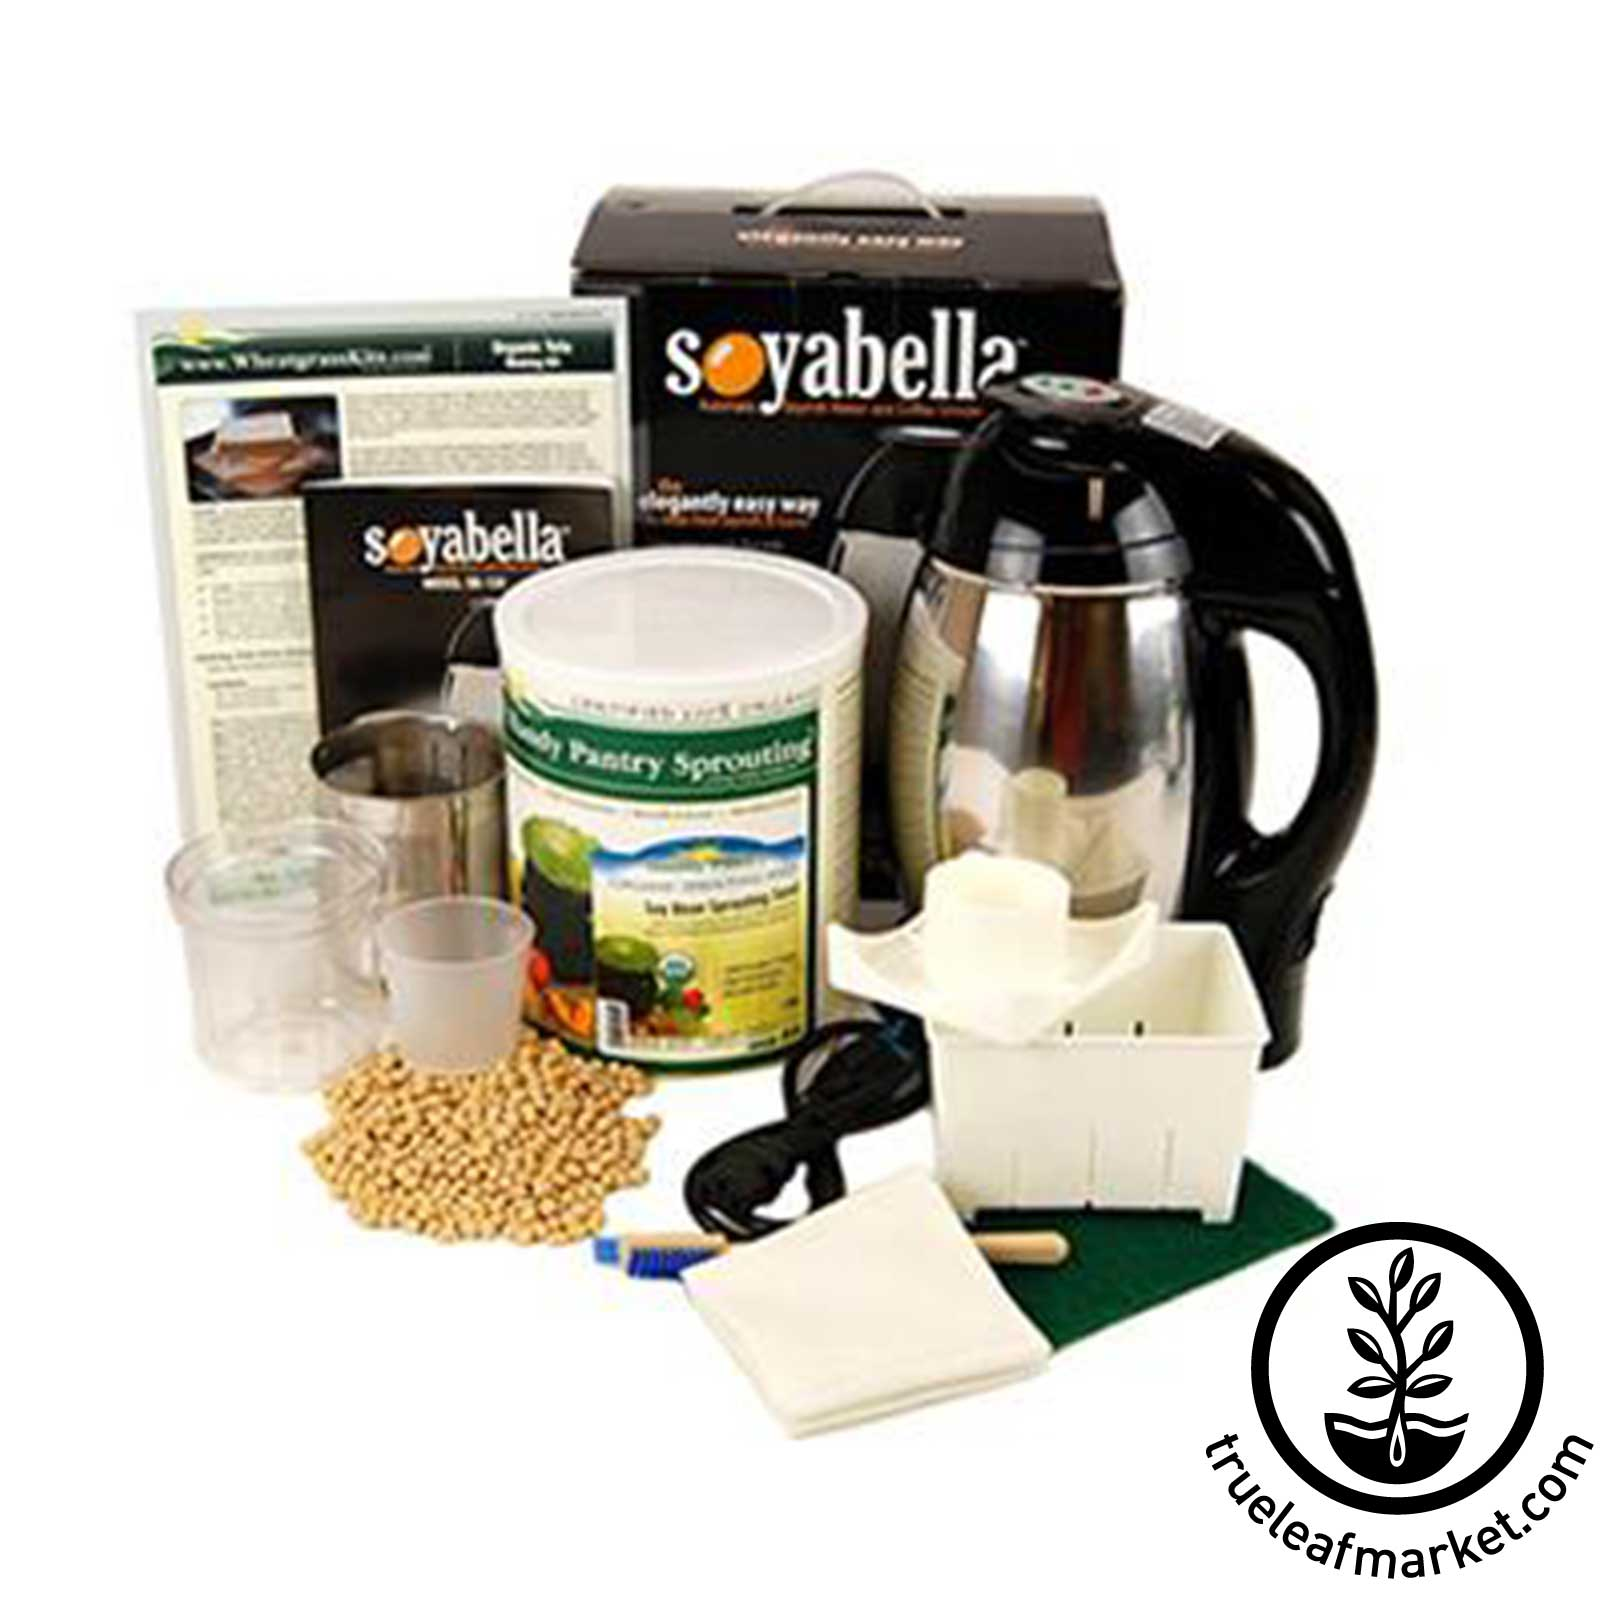 Soymilk & Tofu Making Kit with 5 Lbs Soybeans soytoy, SoyToy, soy milk, soymilk, fresh soy, soy beans, soy milk machine, soyabella